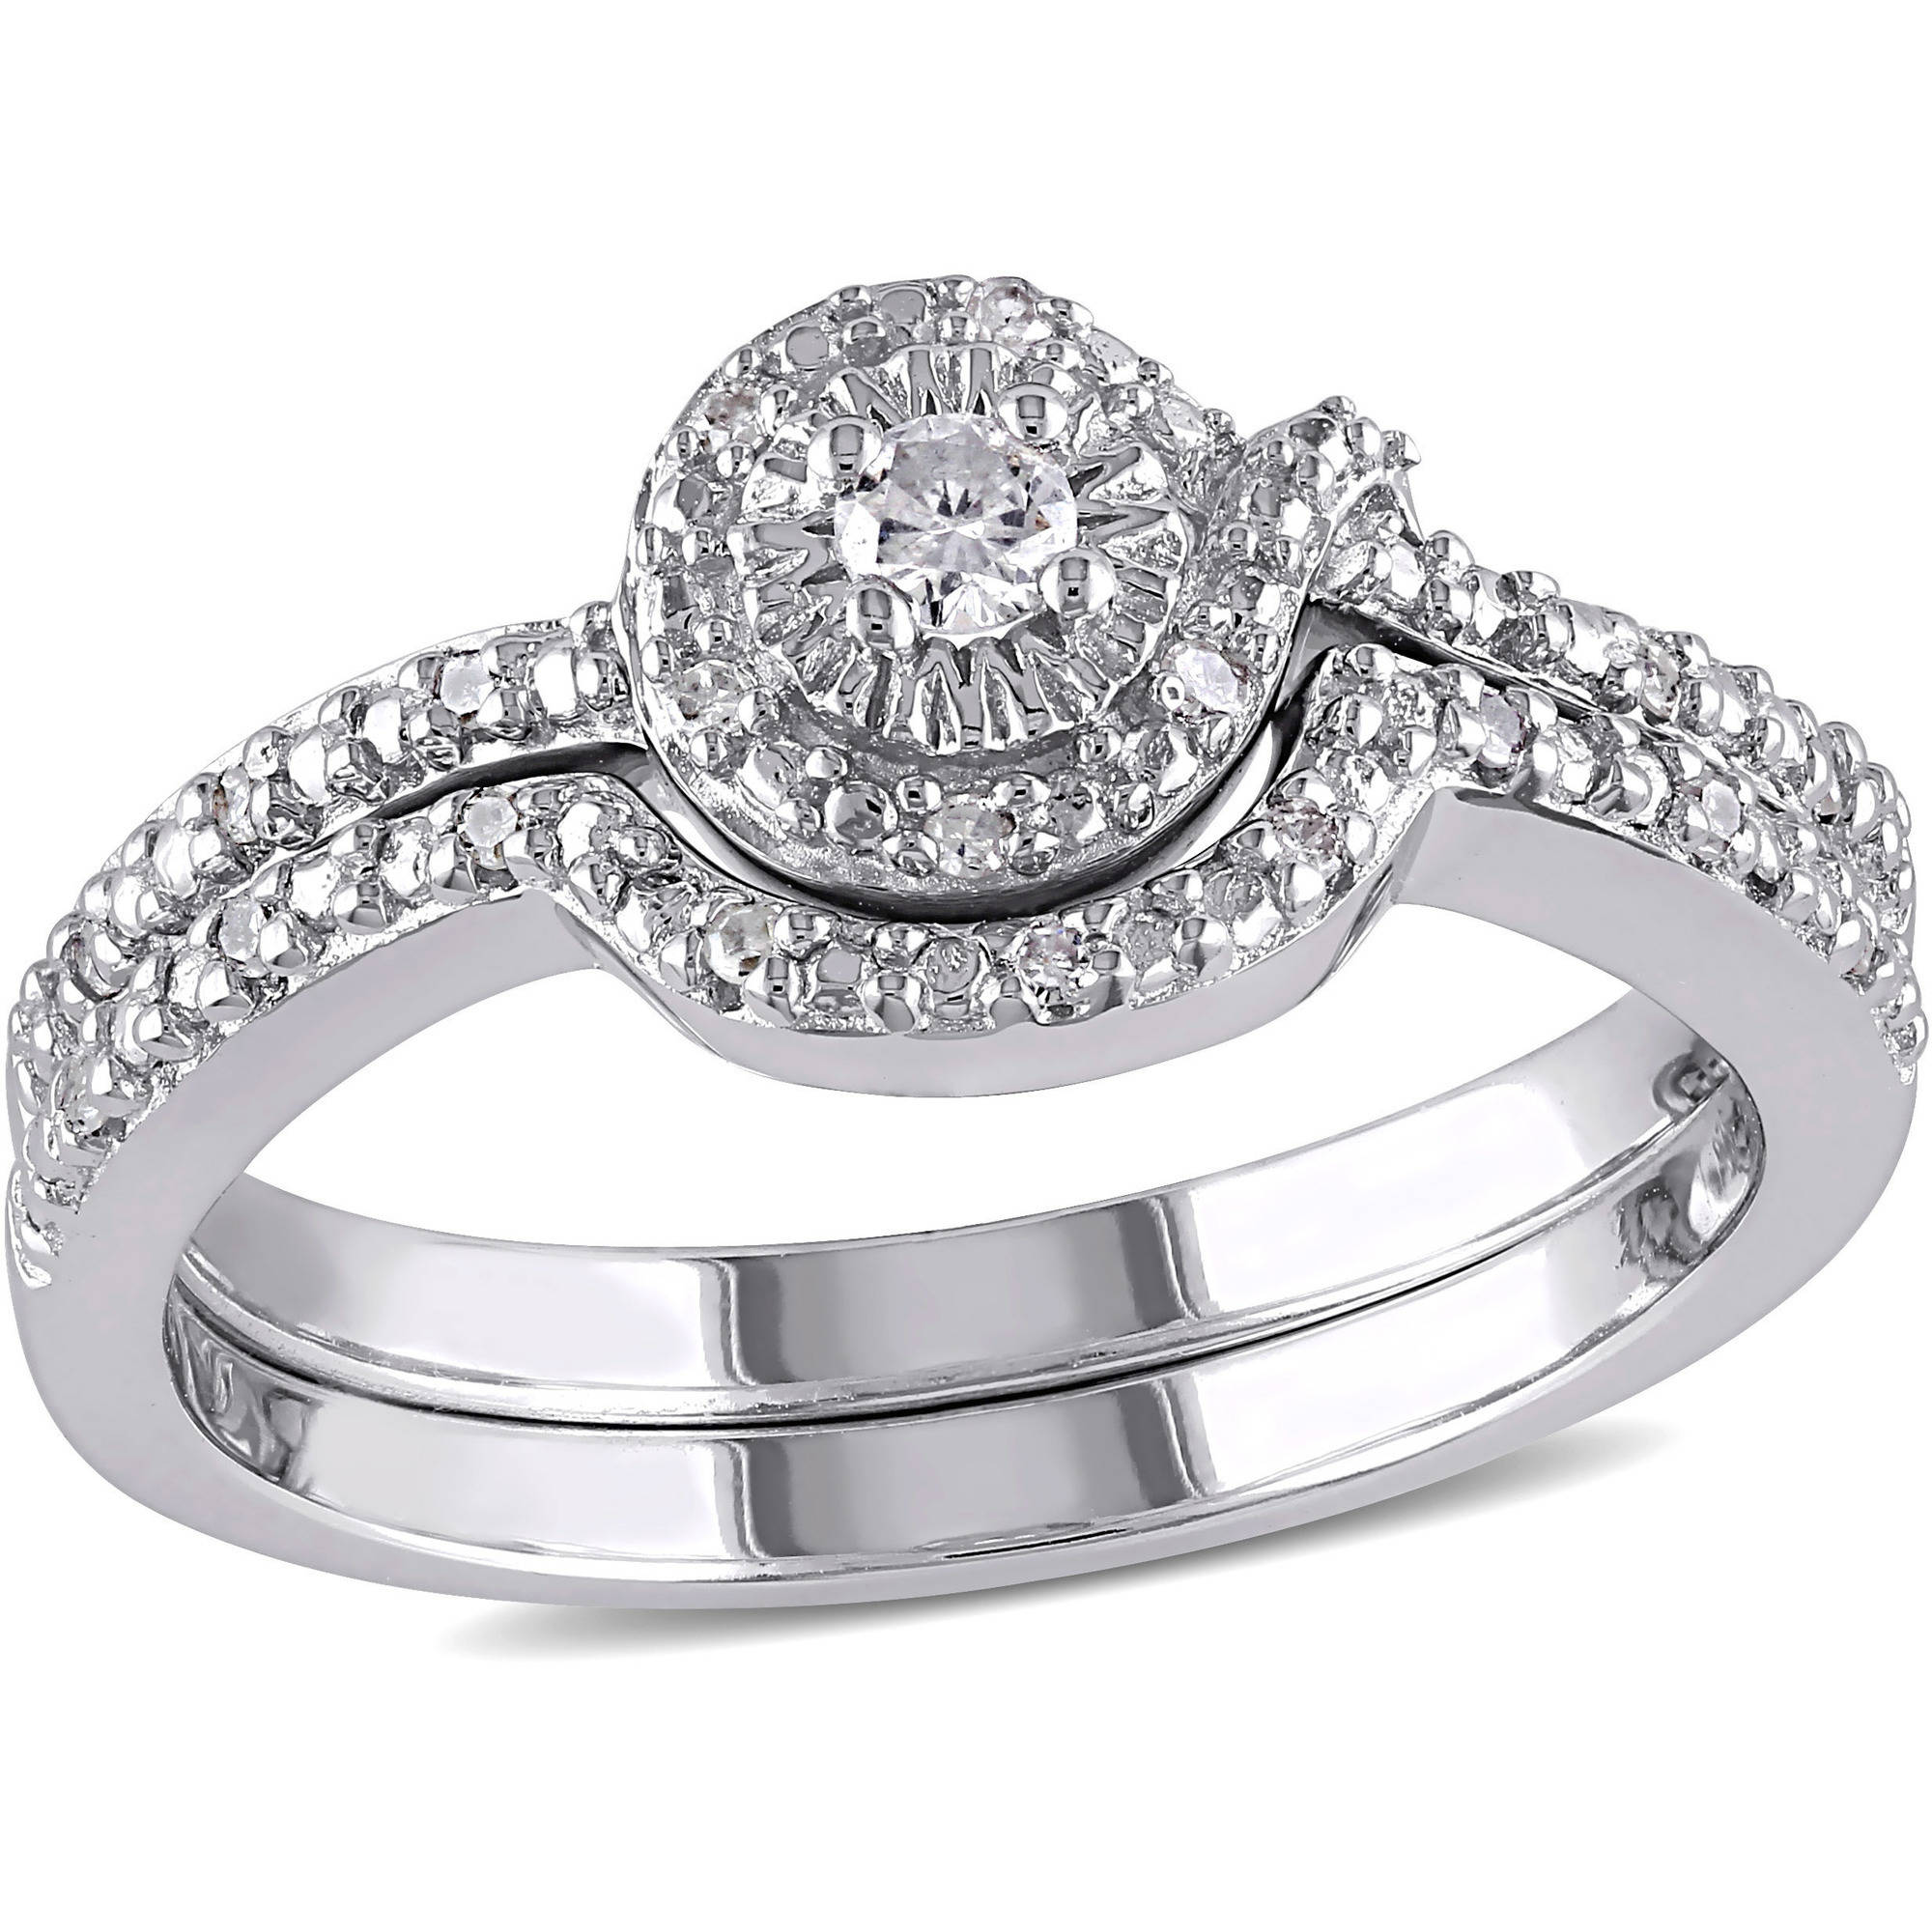 Miabella 1/7 Carat T.W. Diamond Sterling Silver Loop-Style Bridal Set